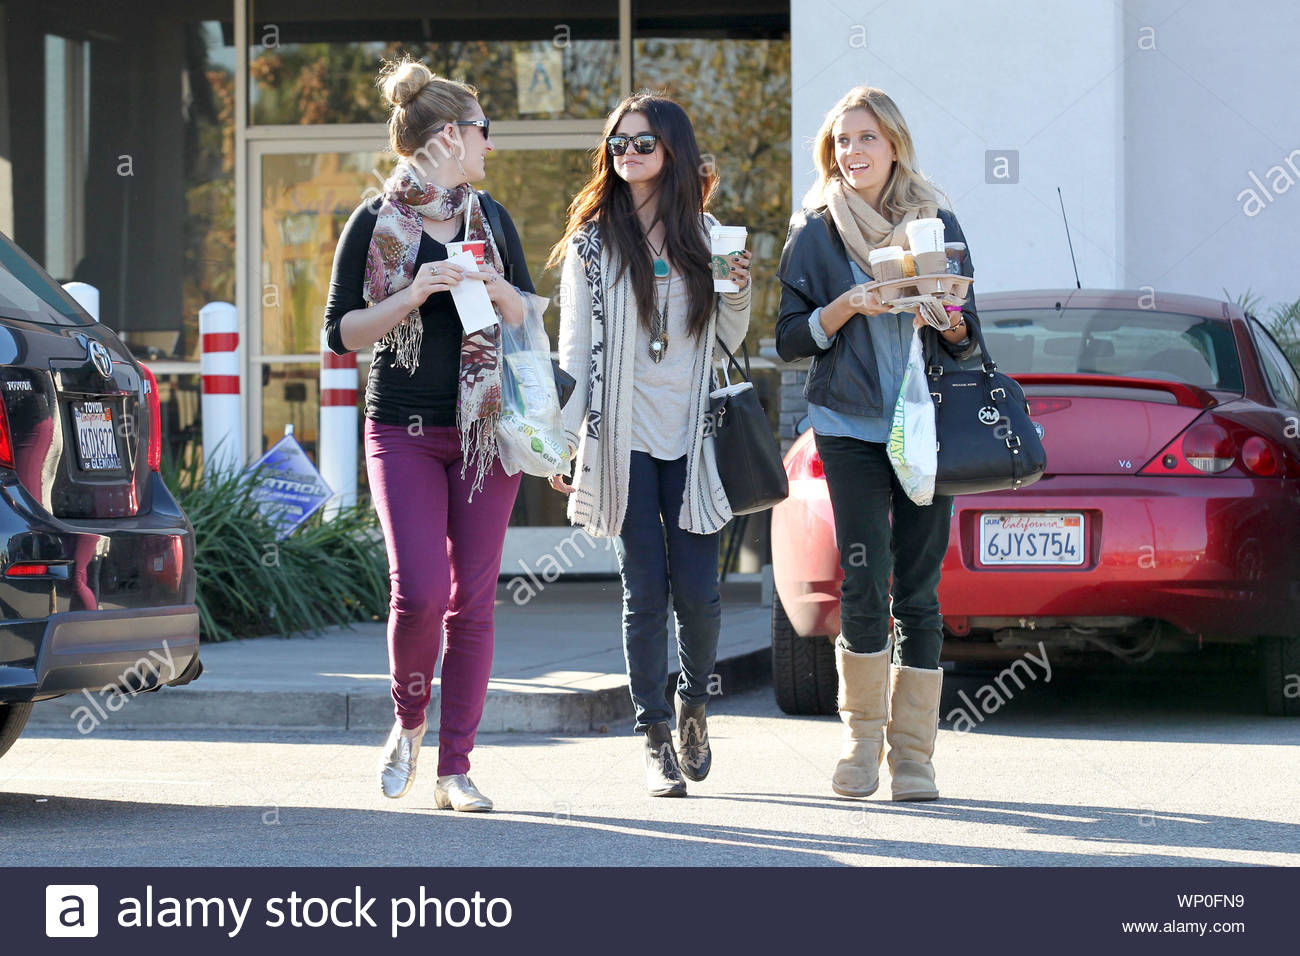 burbank ca after selena gomez grabbed some lunch from mcdonalds earlier today she made her way https www alamy com burbank ca after selena gomez grabbed some lunch from mcdonalds earlier today she made her way to the studio and during her break got some quality time with her gal pals as they made a coffee run to starbucks and picked up some food from subway the actresssinger recently ended her relationship with justin bieber and it appears that she is doing just fine without him with recent rumors of the young starlet hitting it off with the hunger games star josh hutchinson at the golden globe awards and reports that selena was getting super close and holding hands with her monte carlo image271690309 html